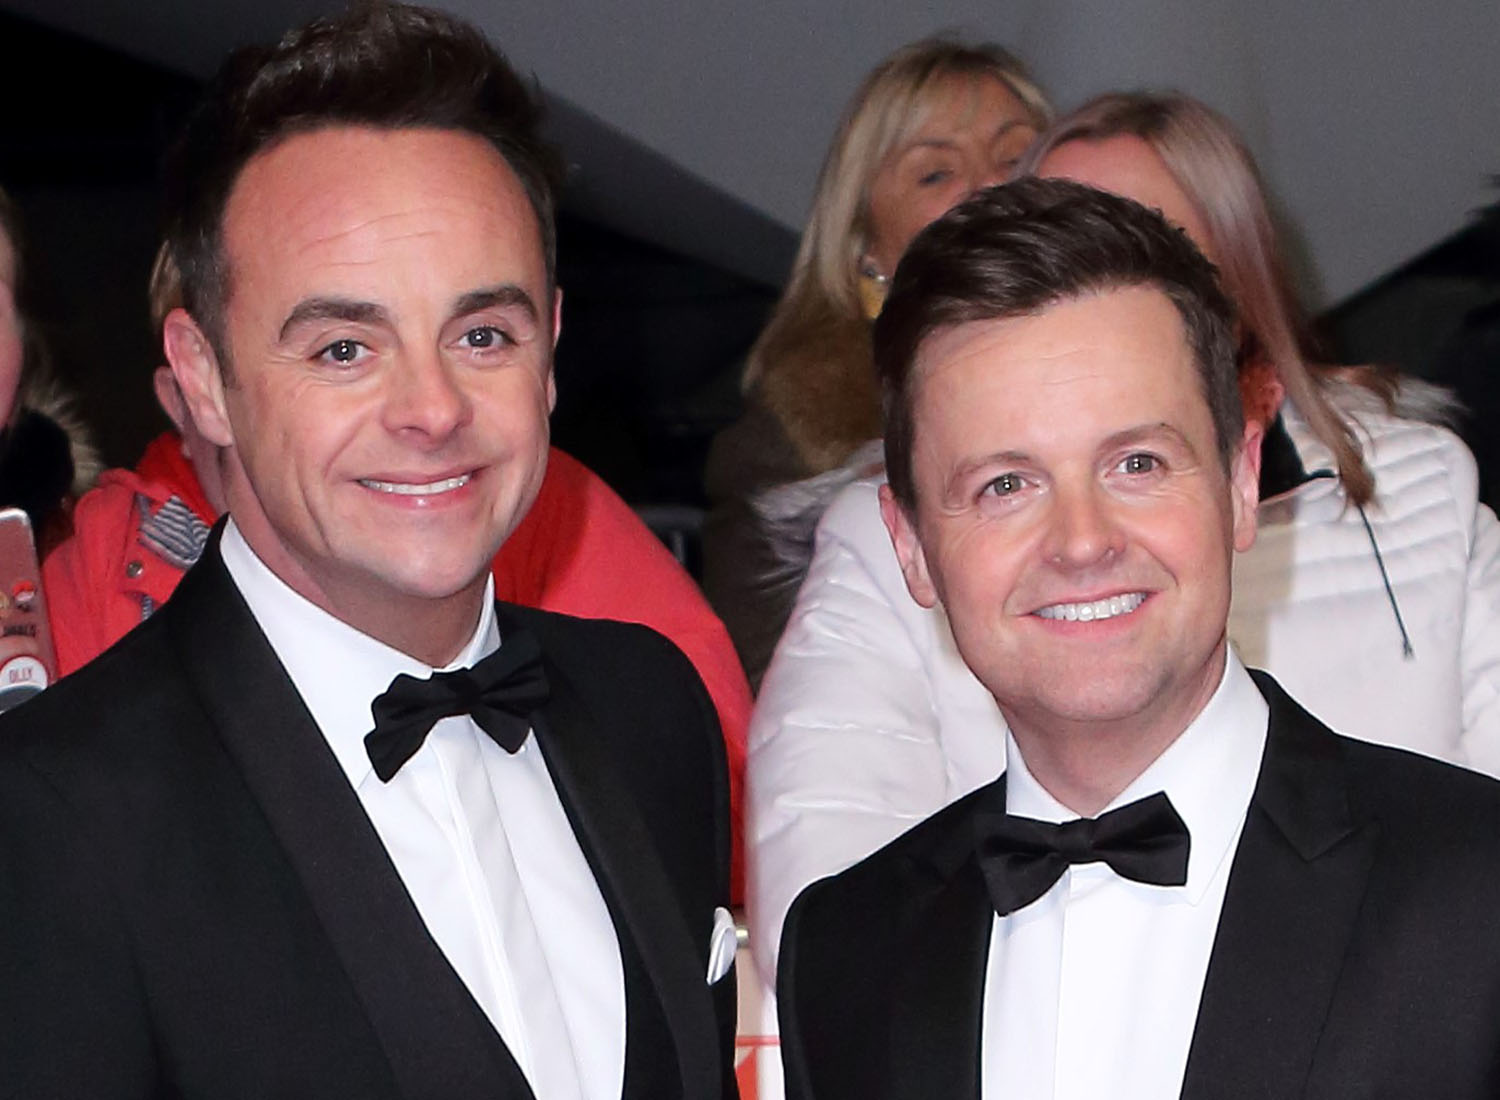 Dec Donnelly fans are loving his 'new look' in video with best pal Ant McPartlin